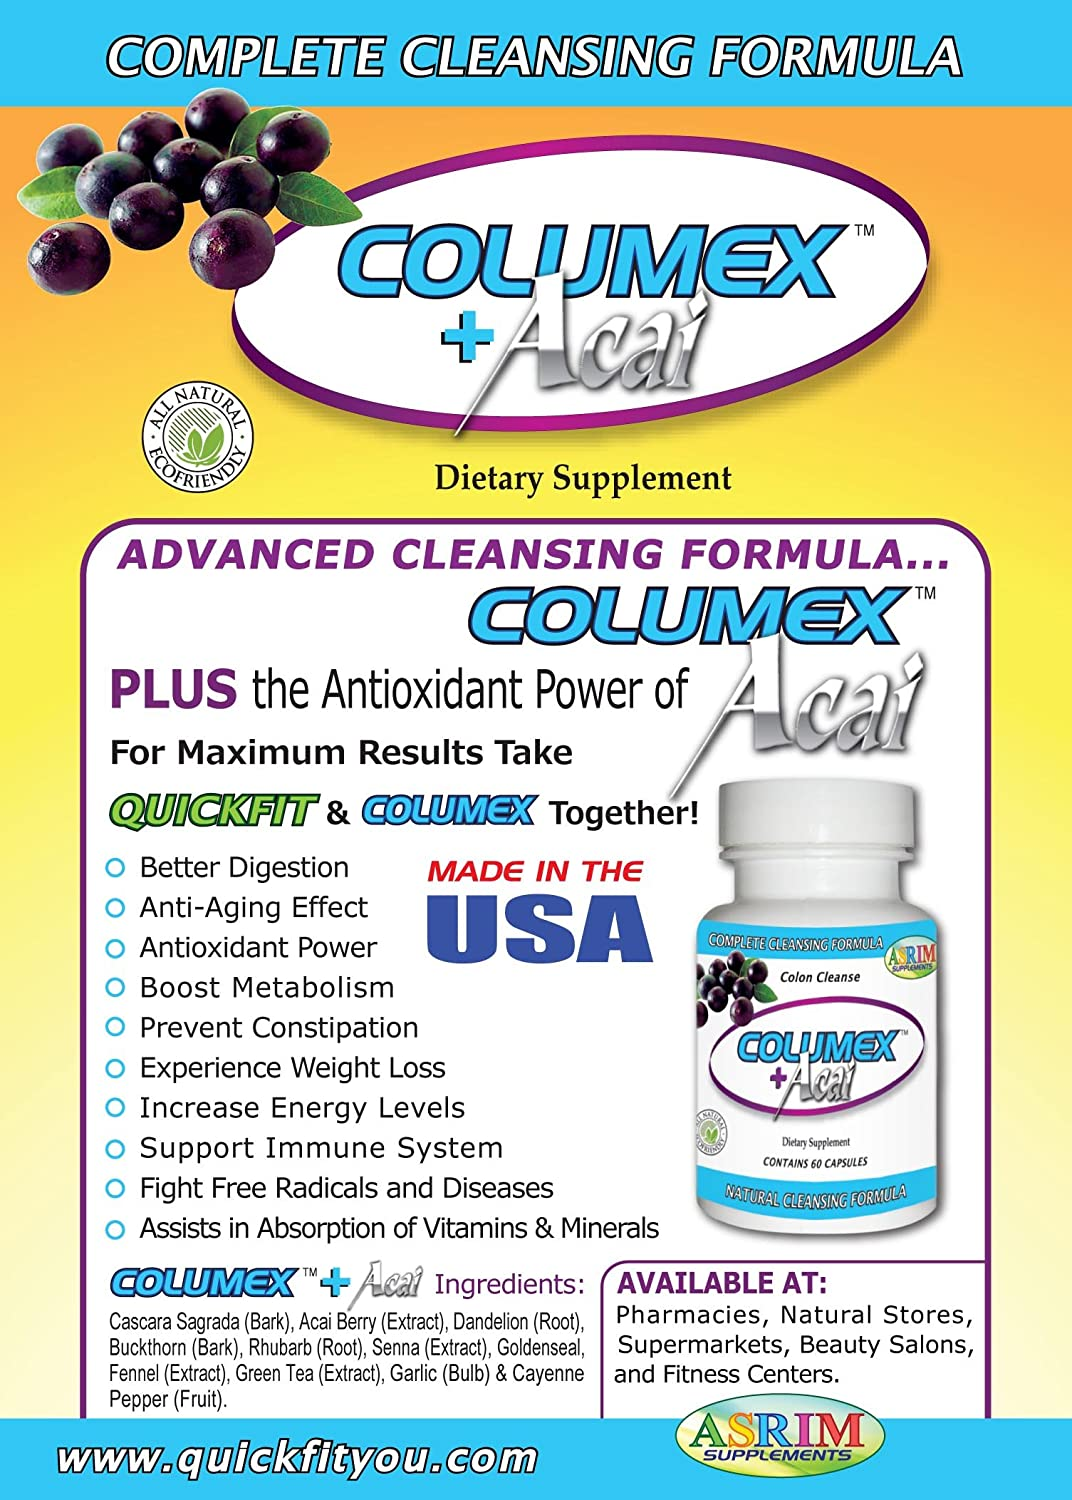 Amazon.com: Quickfit + Green Tea Weight Loss Formula Plus Free Colon Cleanser: Health & Personal Care